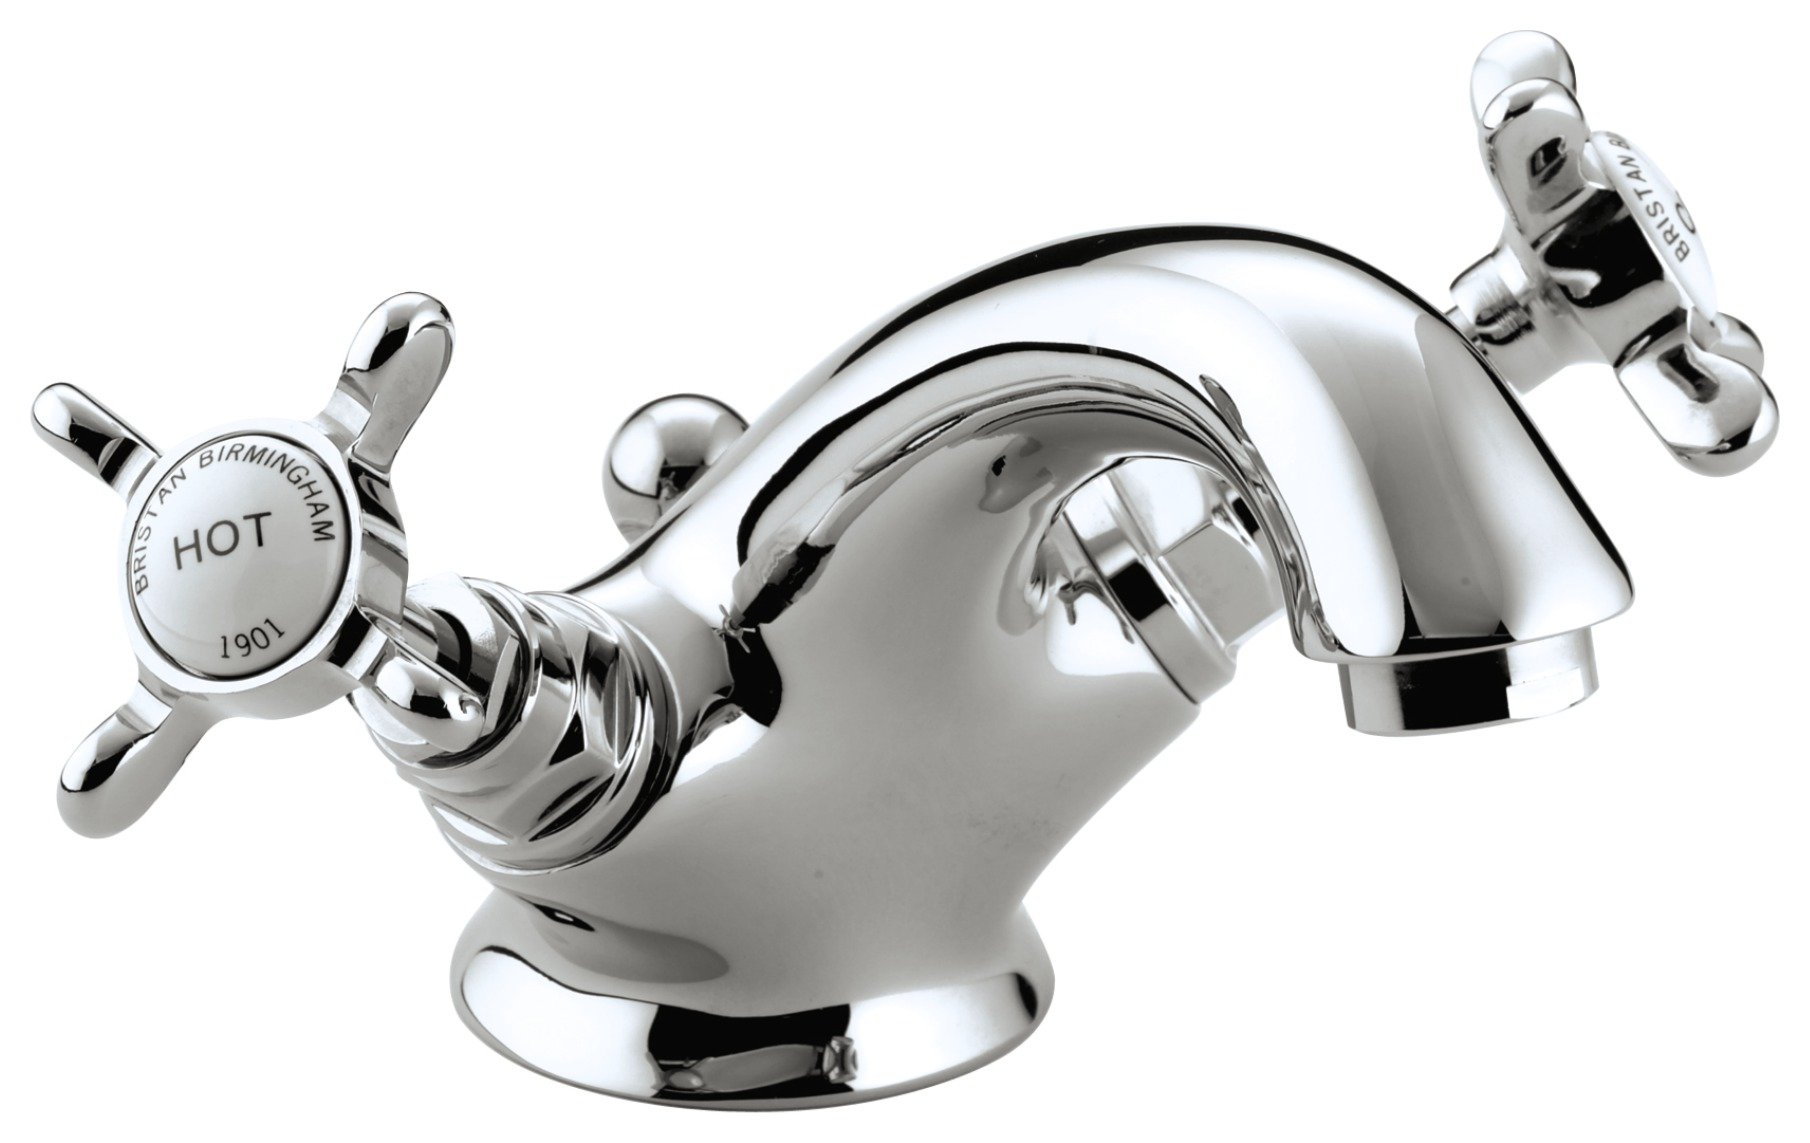 Image of Bristan 1901 Basin Mixer Taps - Chrome.